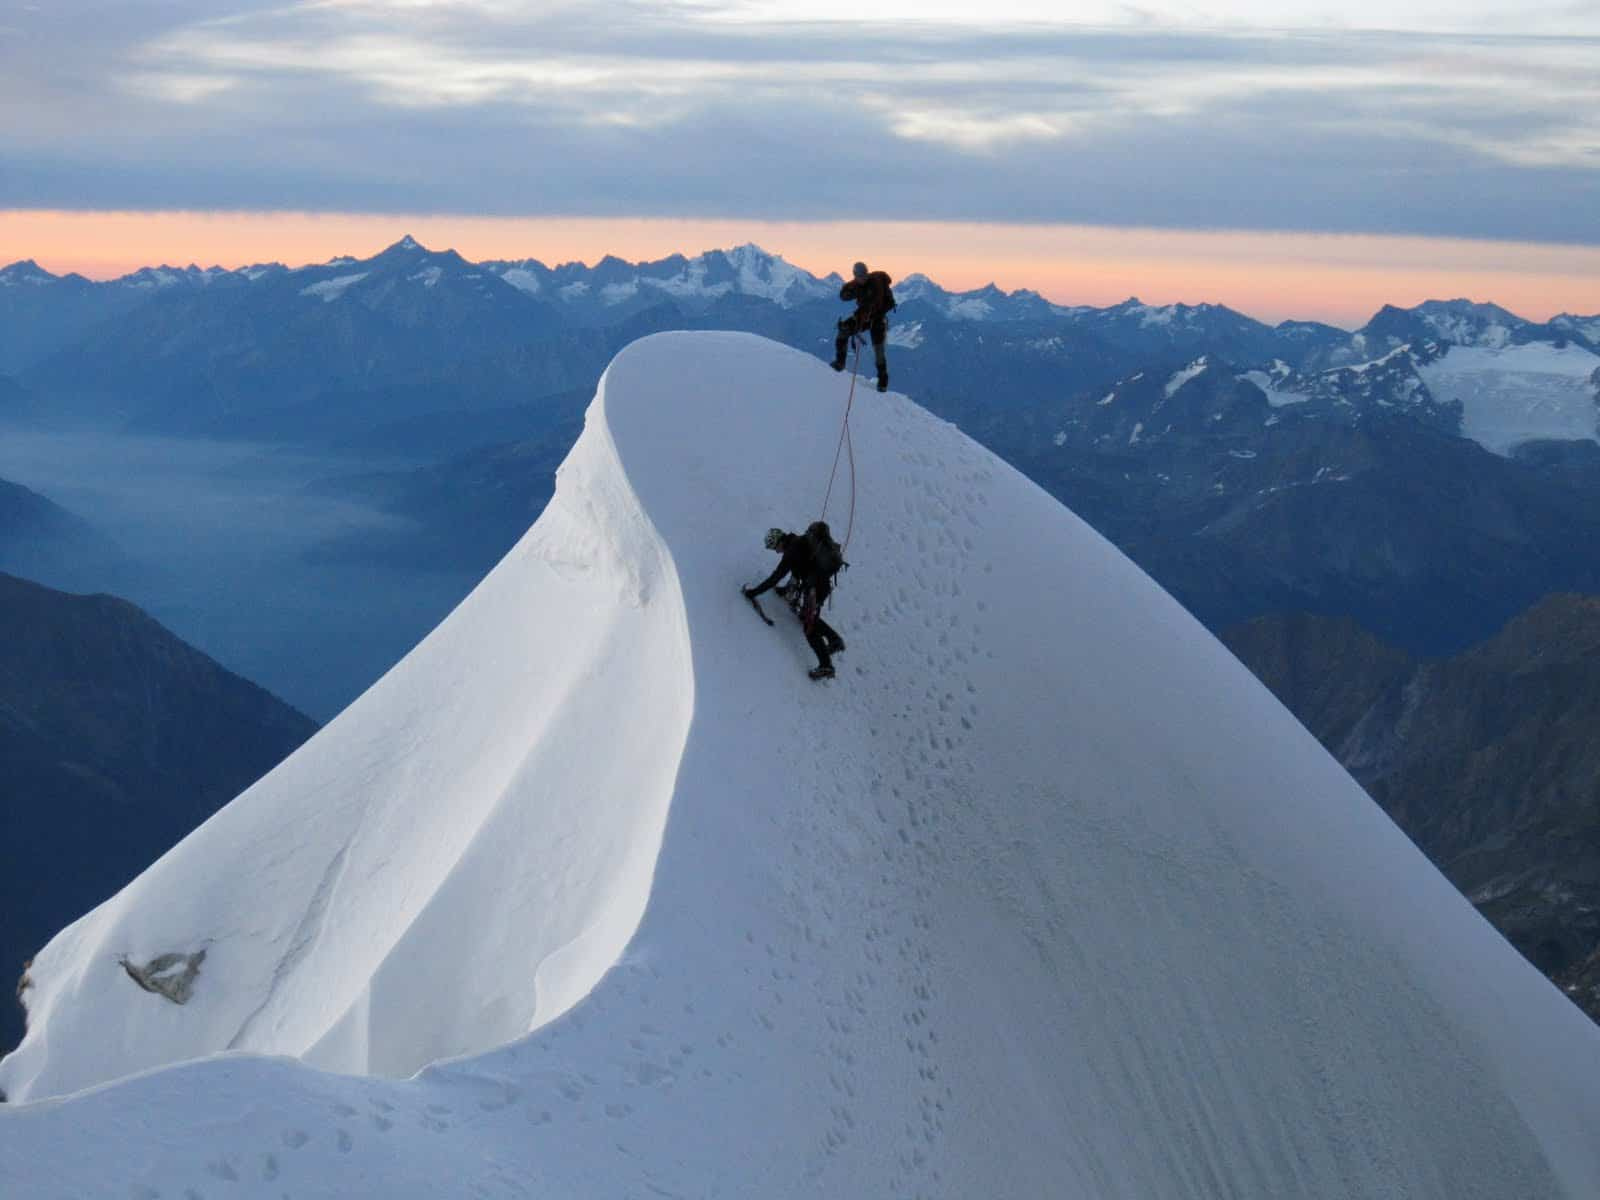 Self-management Everest: Who wants to climb to the top?